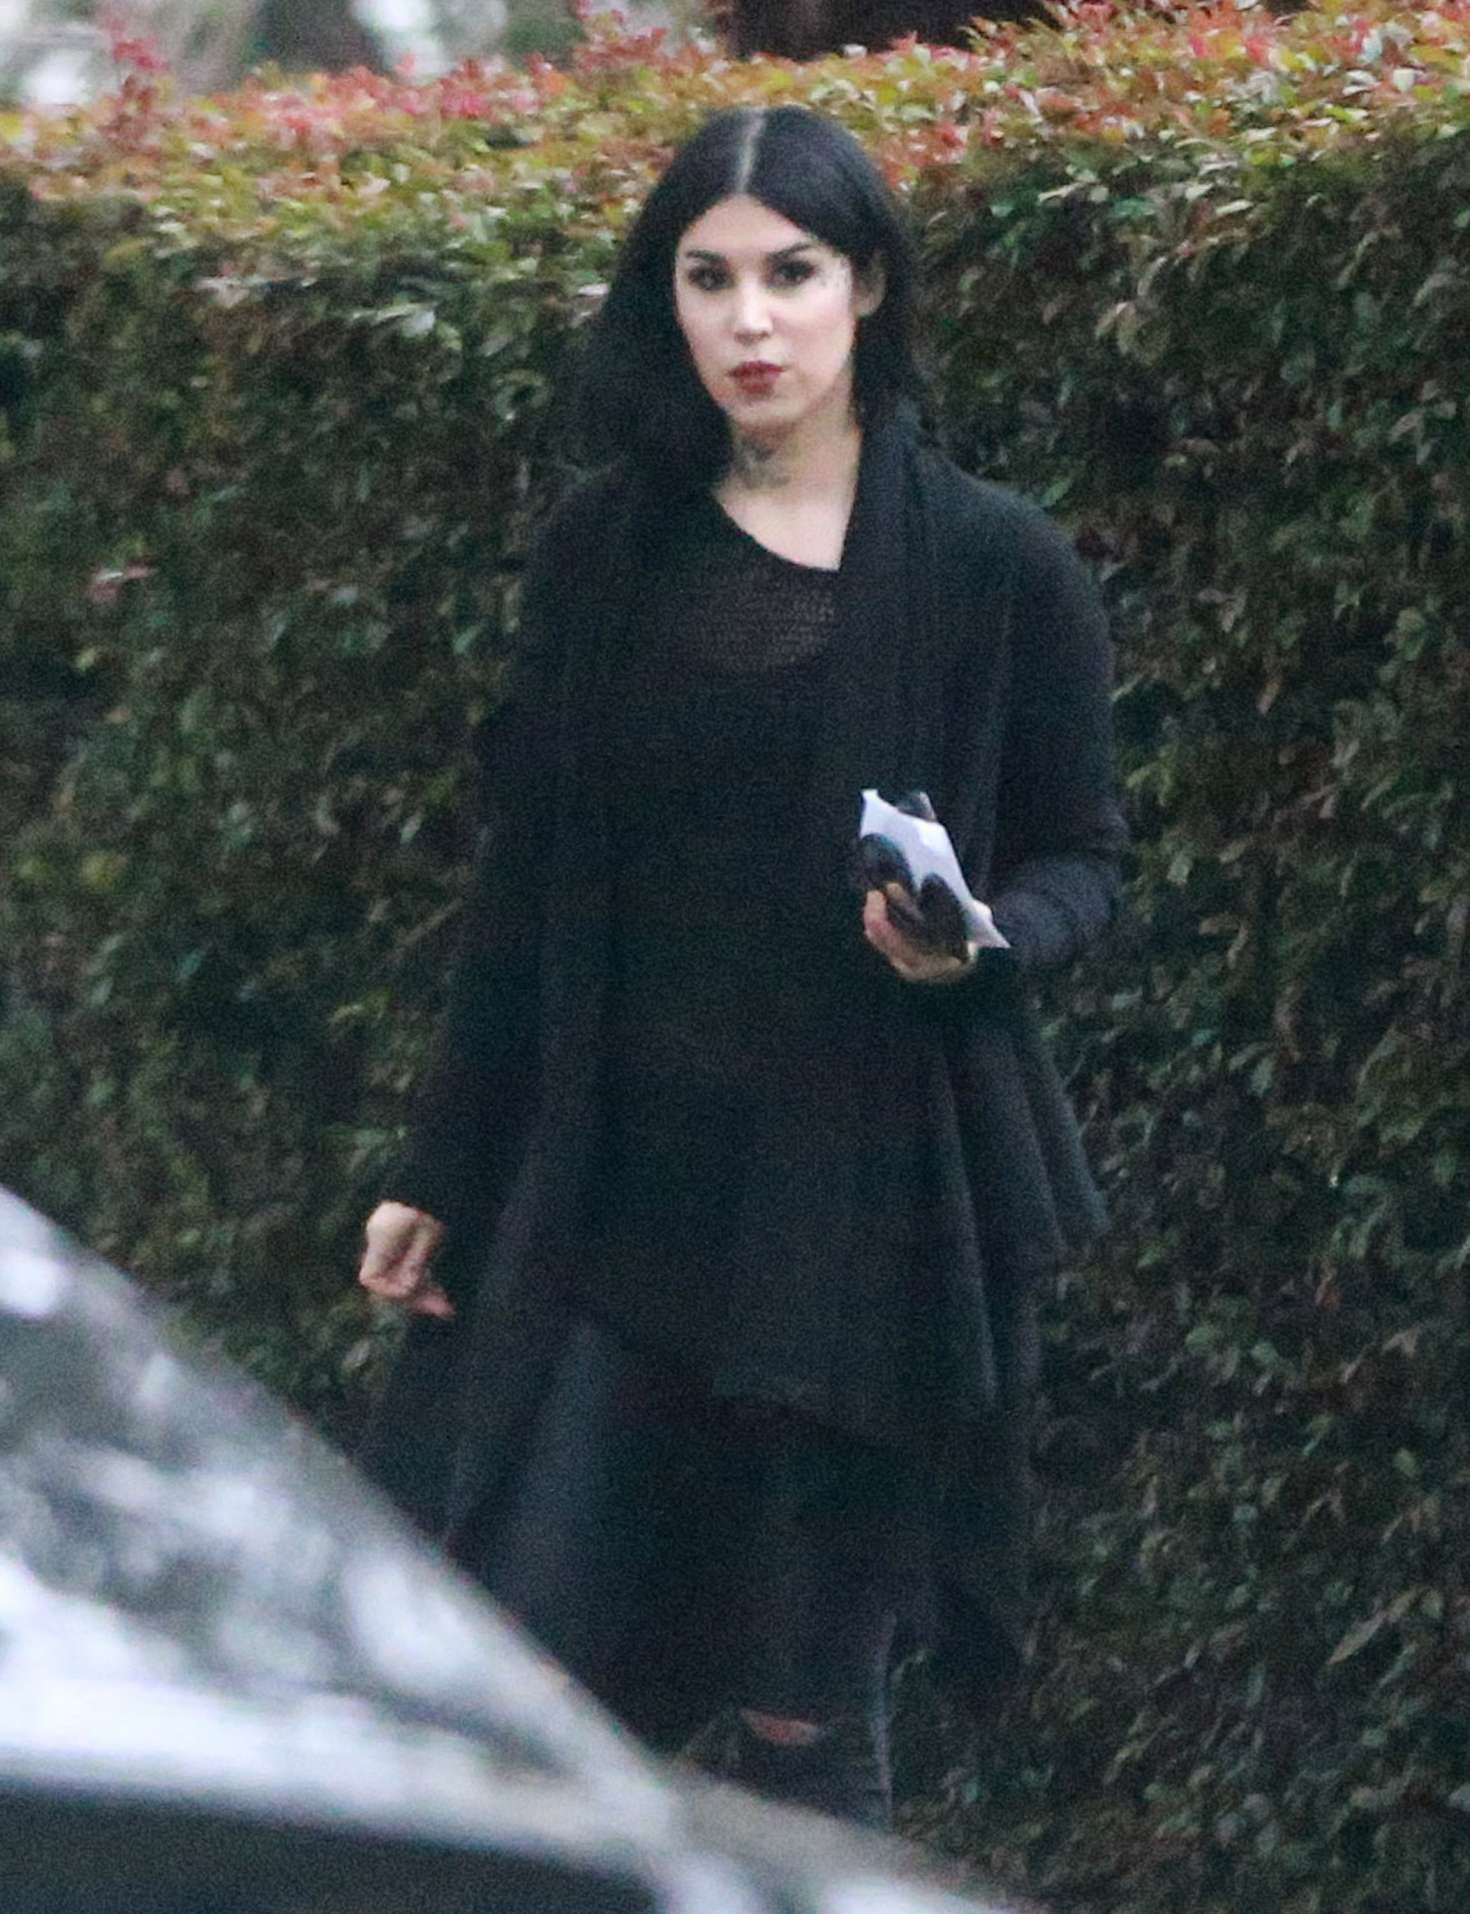 Kat Von D headed to a friend's house in Los Angeles